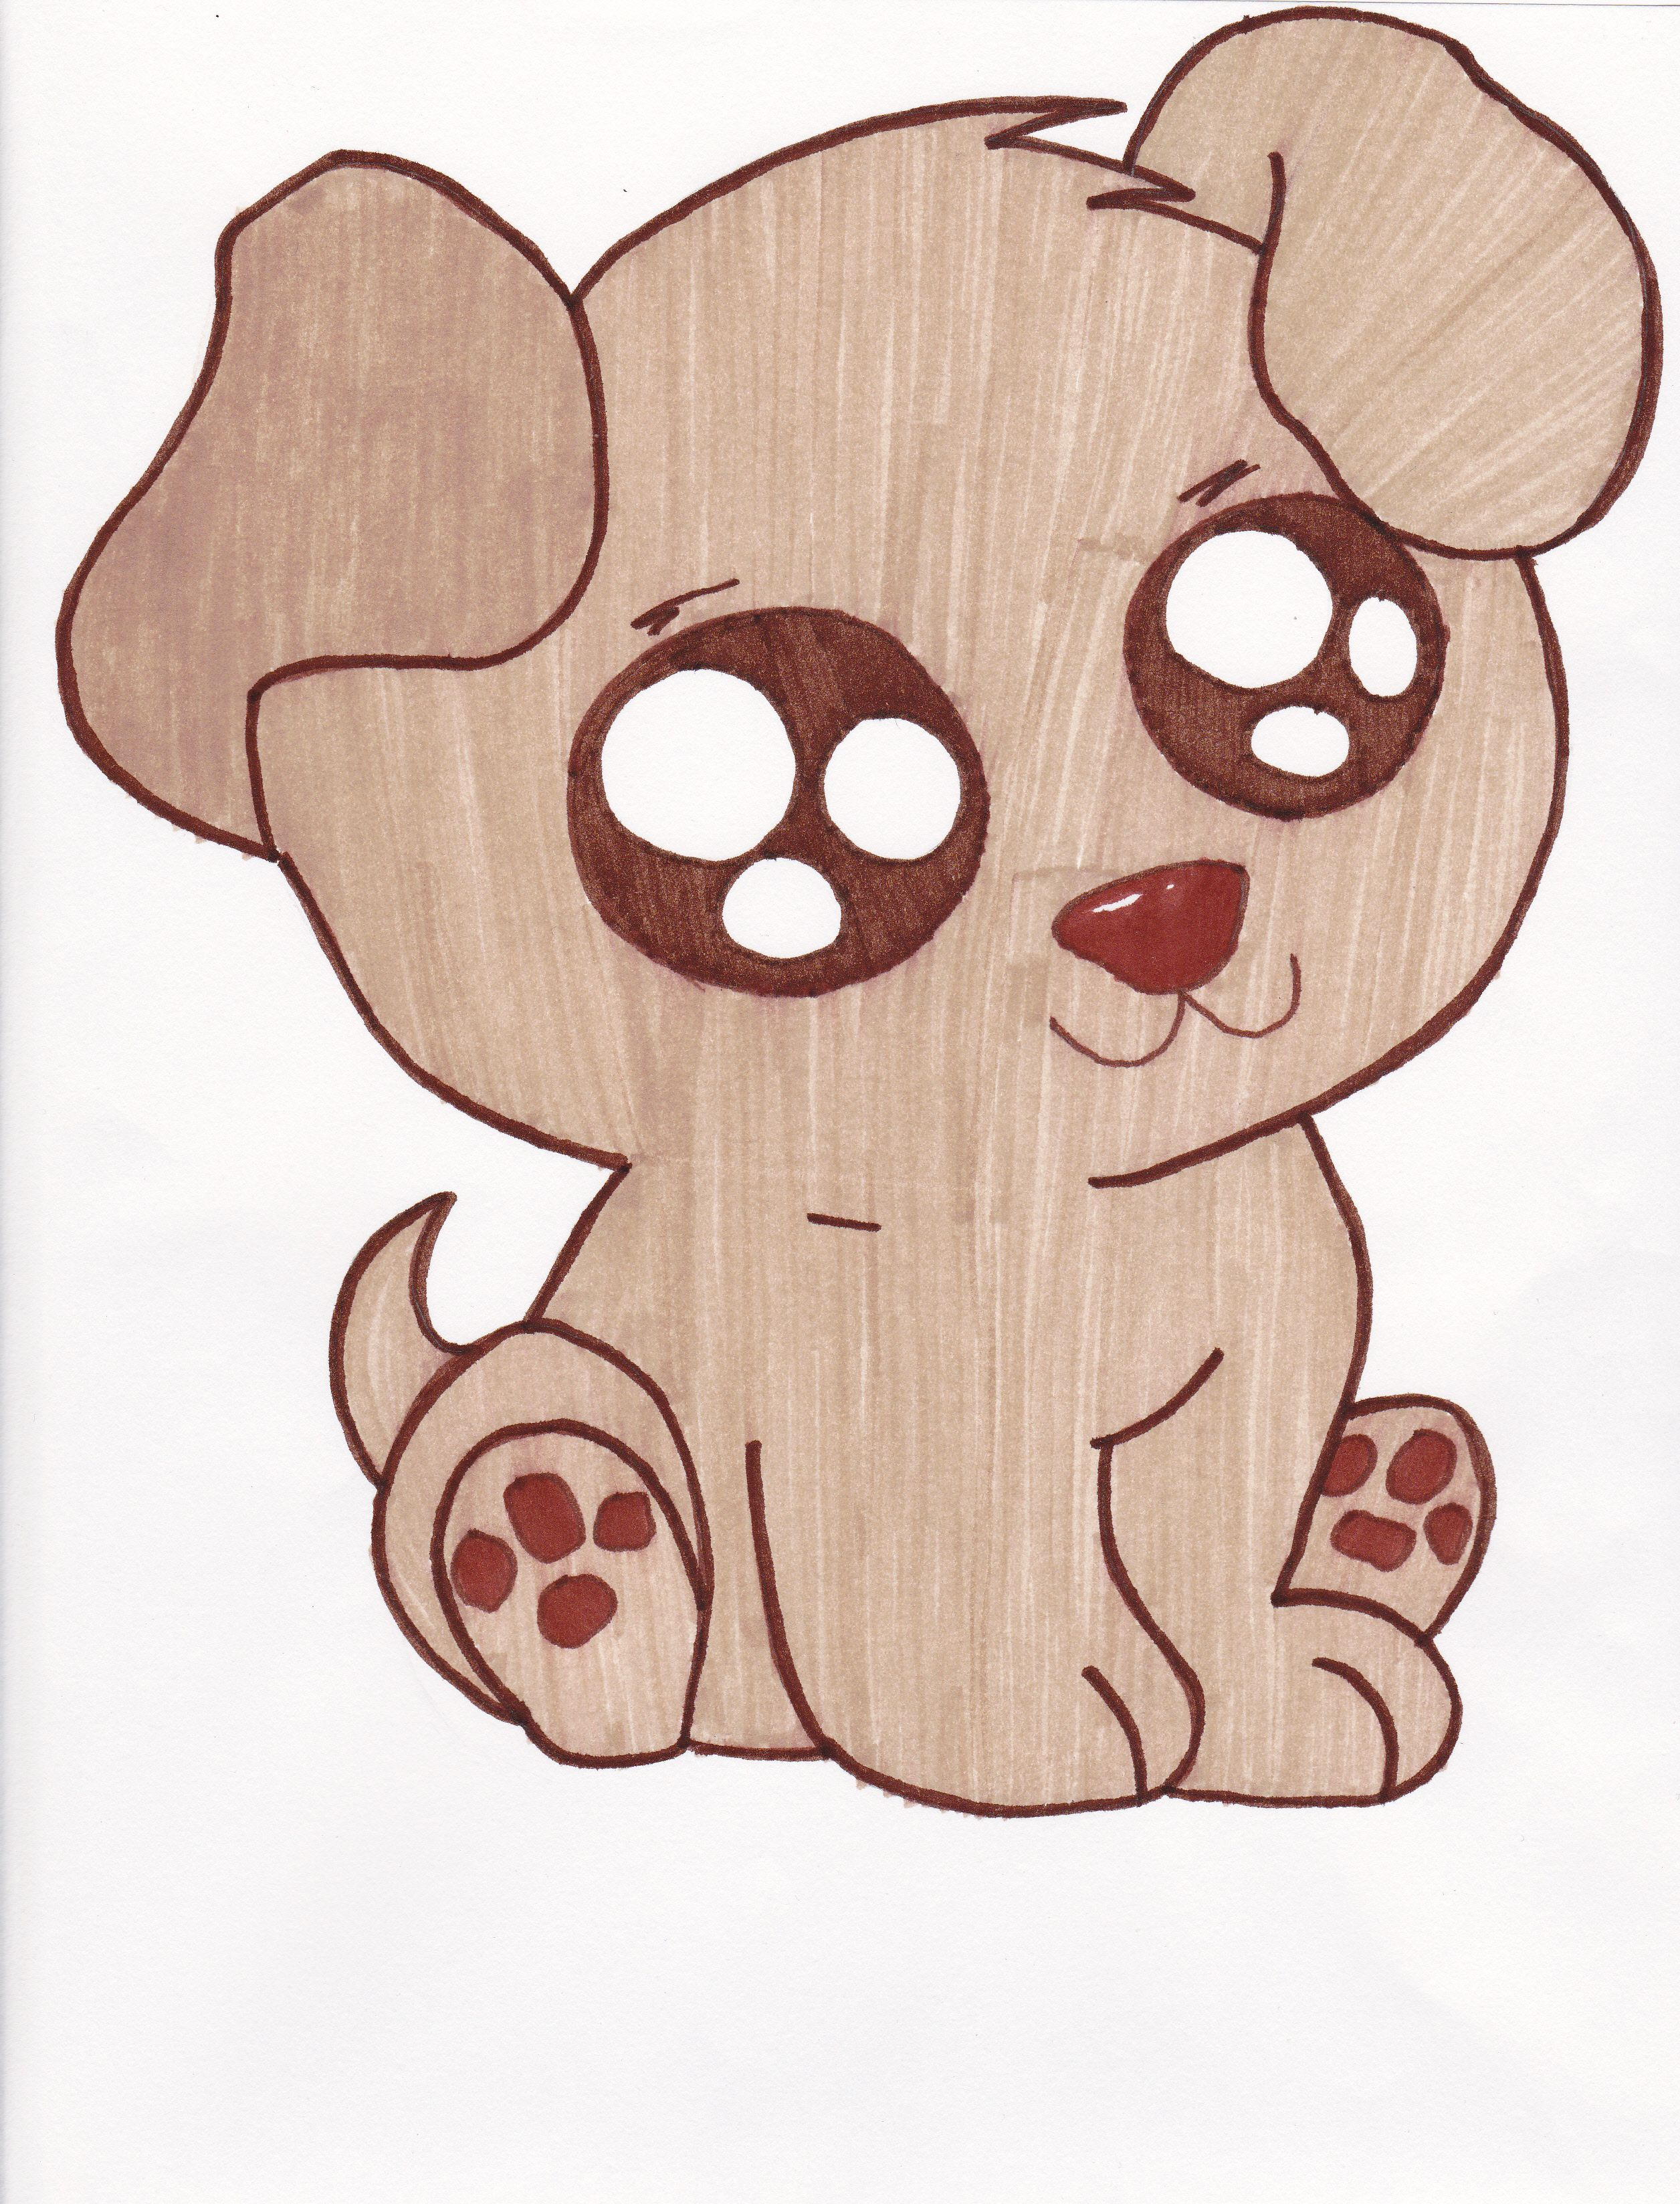 A Cute Puppy Drawing by AnnaR Dibujos bonitos, Dibujos